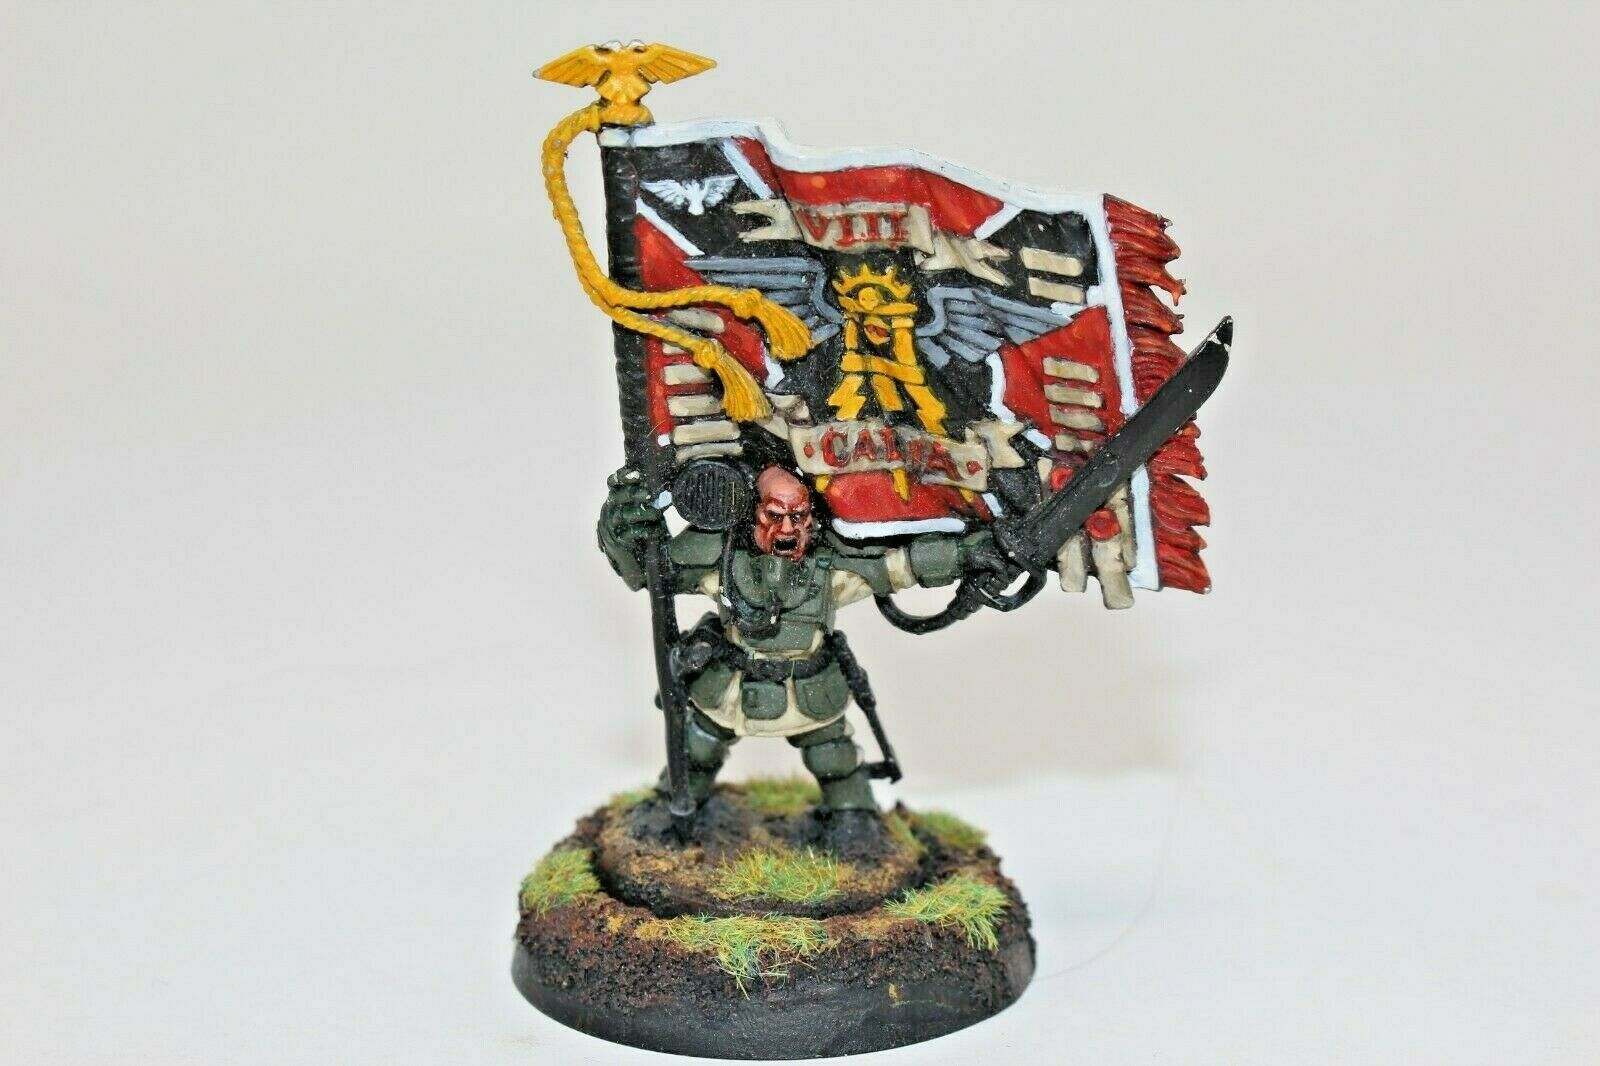 Warhammer Imperial Guard Colour Sergeant Kell Well Painted Metal - JYS83